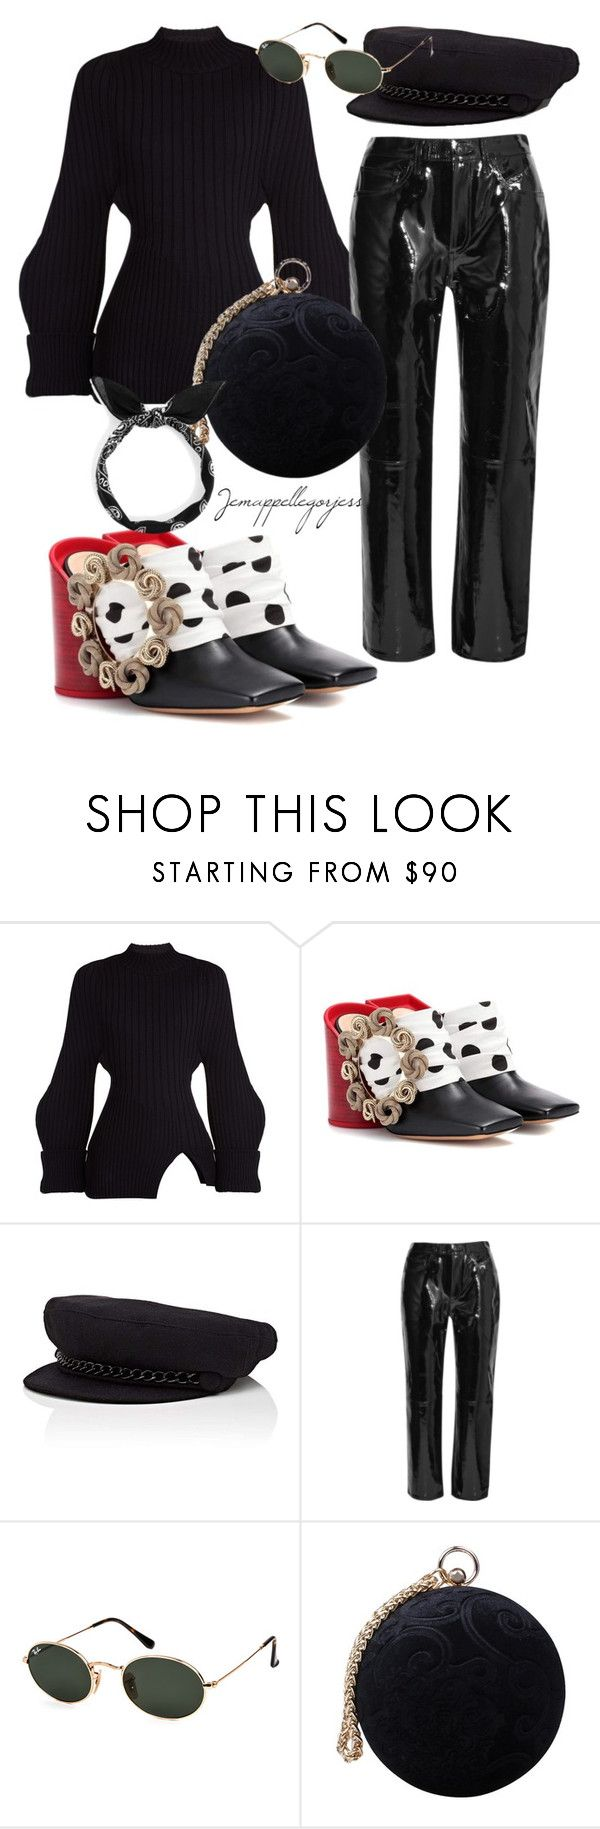 """""""Untitled #338"""" by gorjess24 on Polyvore featuring Jacquemus, Eugenia Kim, rag & bone, Ray-Ban and Carvela"""